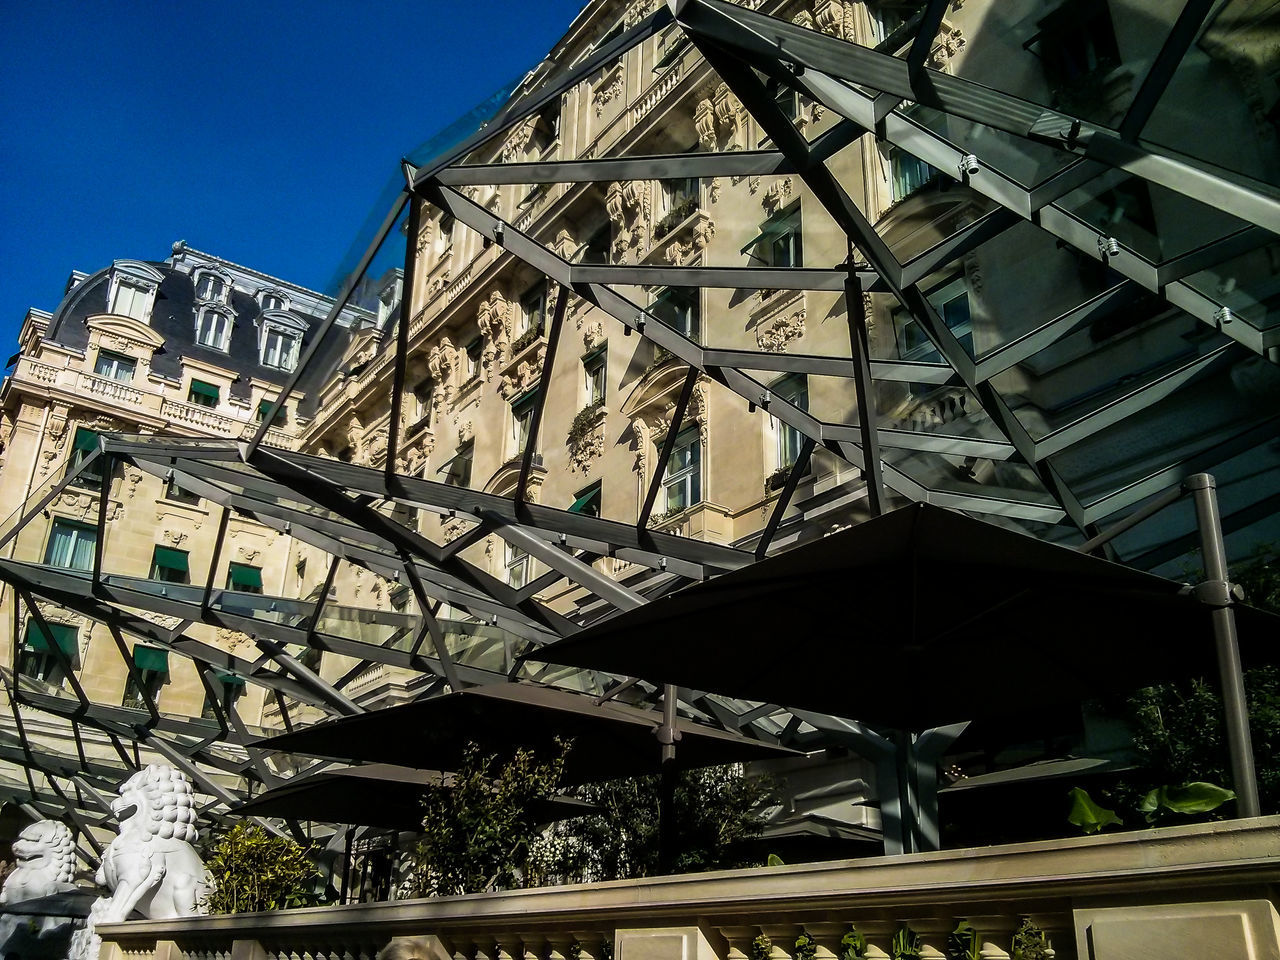 architecture, low angle view, built structure, building exterior, day, outdoors, no people, steps and staircases, roof, clear sky, tree, city, sky